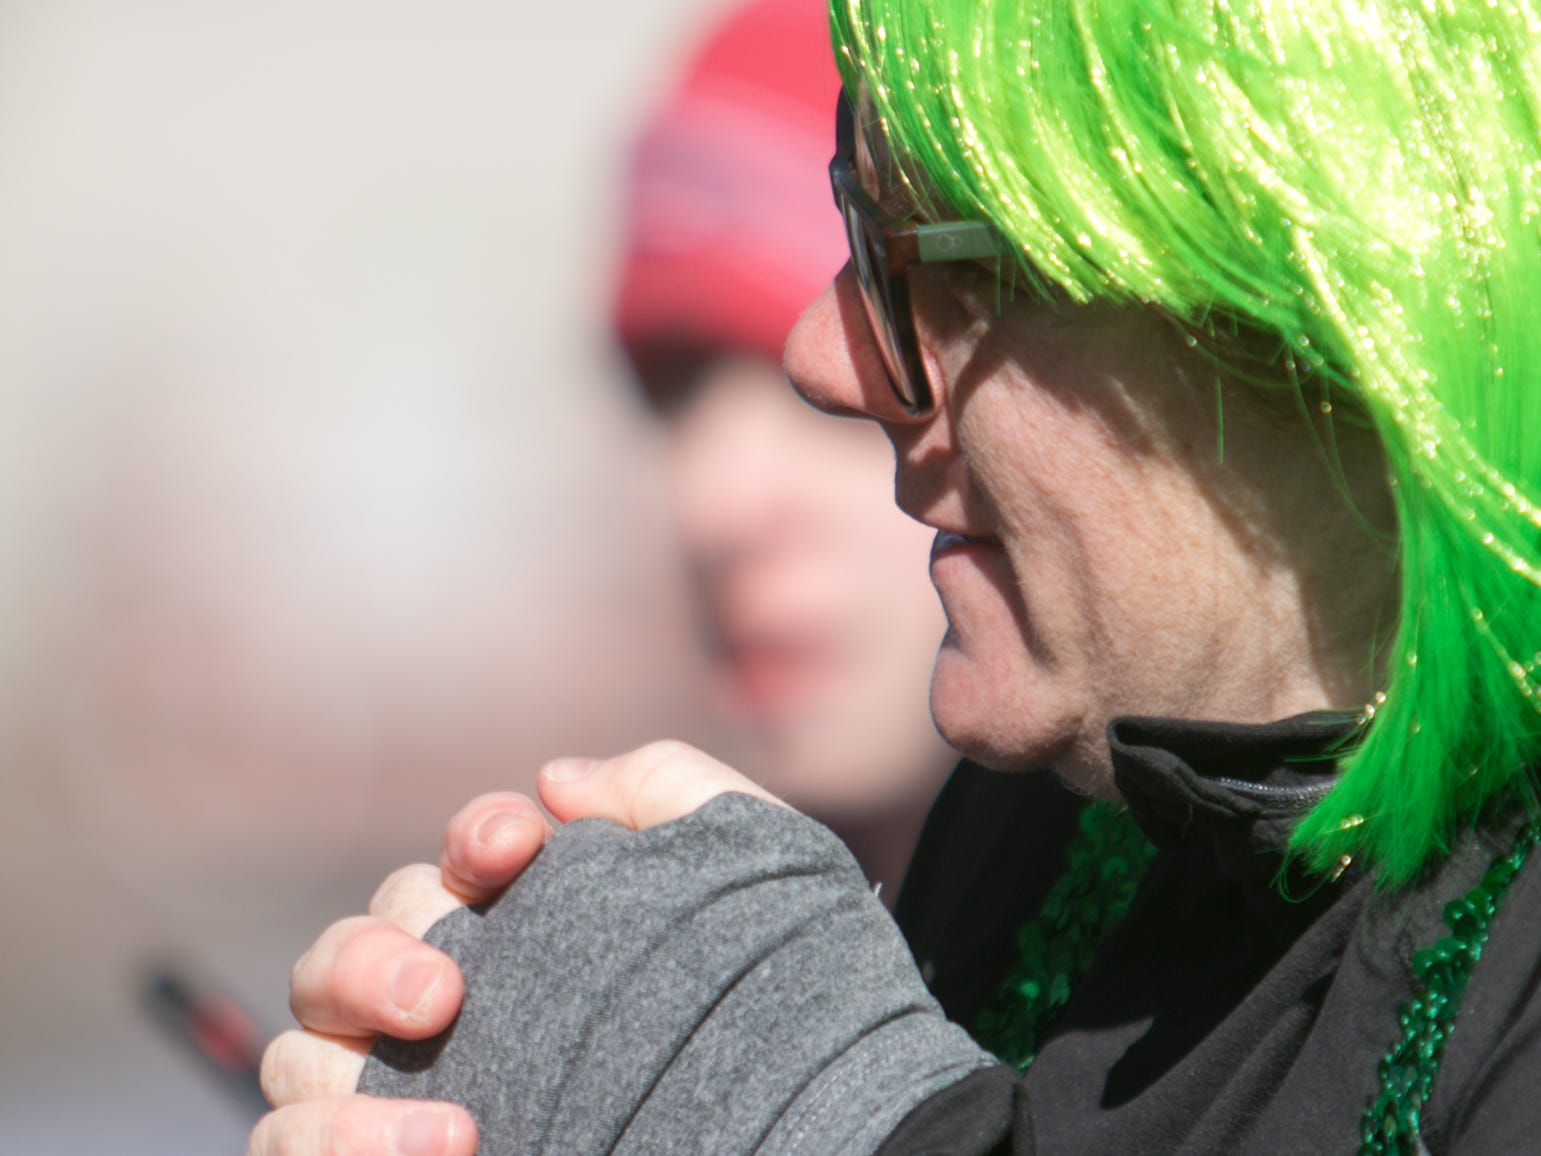 Grace Savercool warms her hands as she listens to the awards being announced after the Run for the Gold Saturday, March 16, 2019. Savercool placed second in her age group.